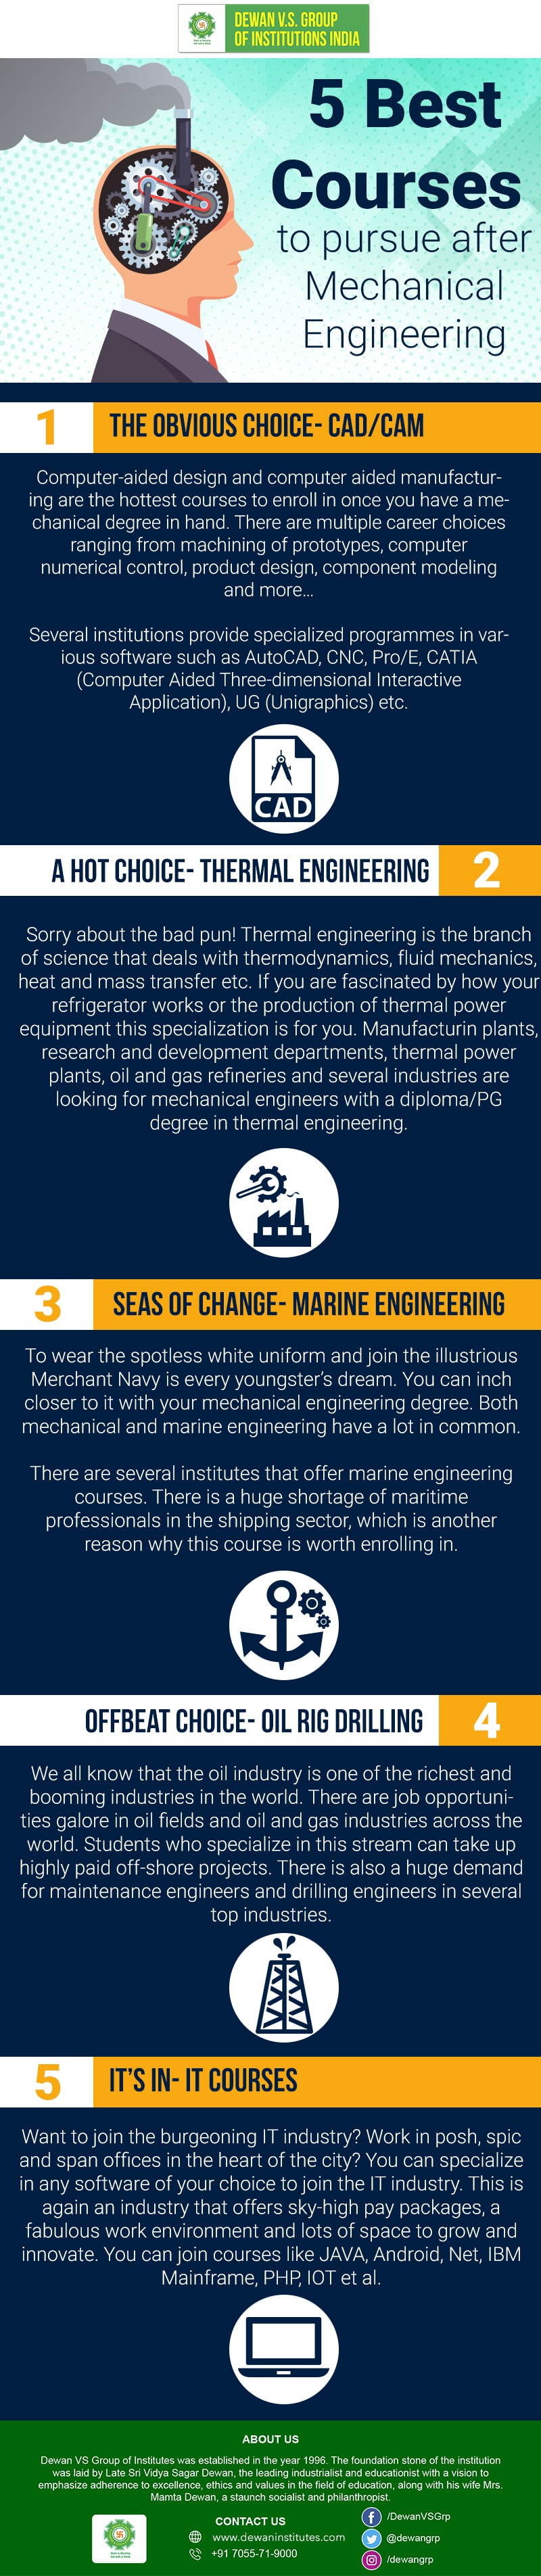 5 Best Courses To Pursue After Mechanical Engineering